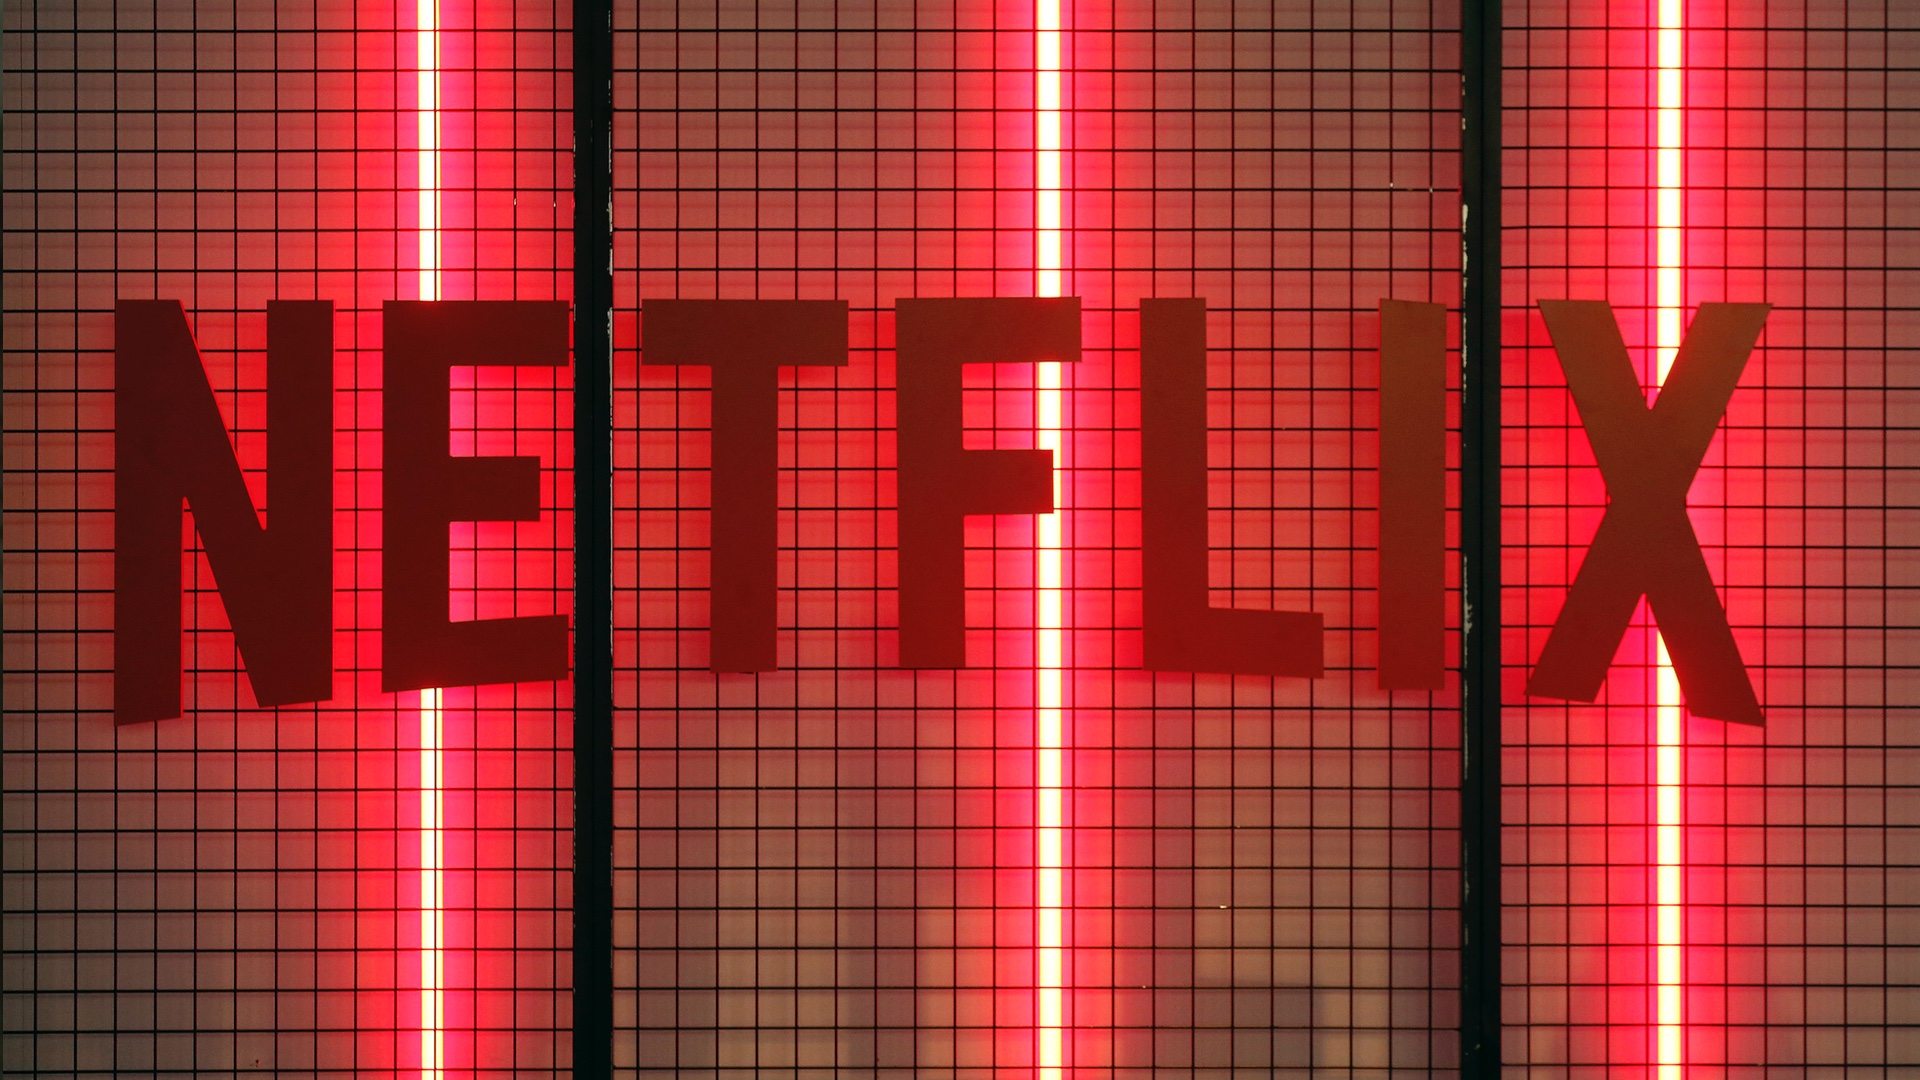 netflix-will-released-700-original-films-and-series-in-2018-alone-social.jpg